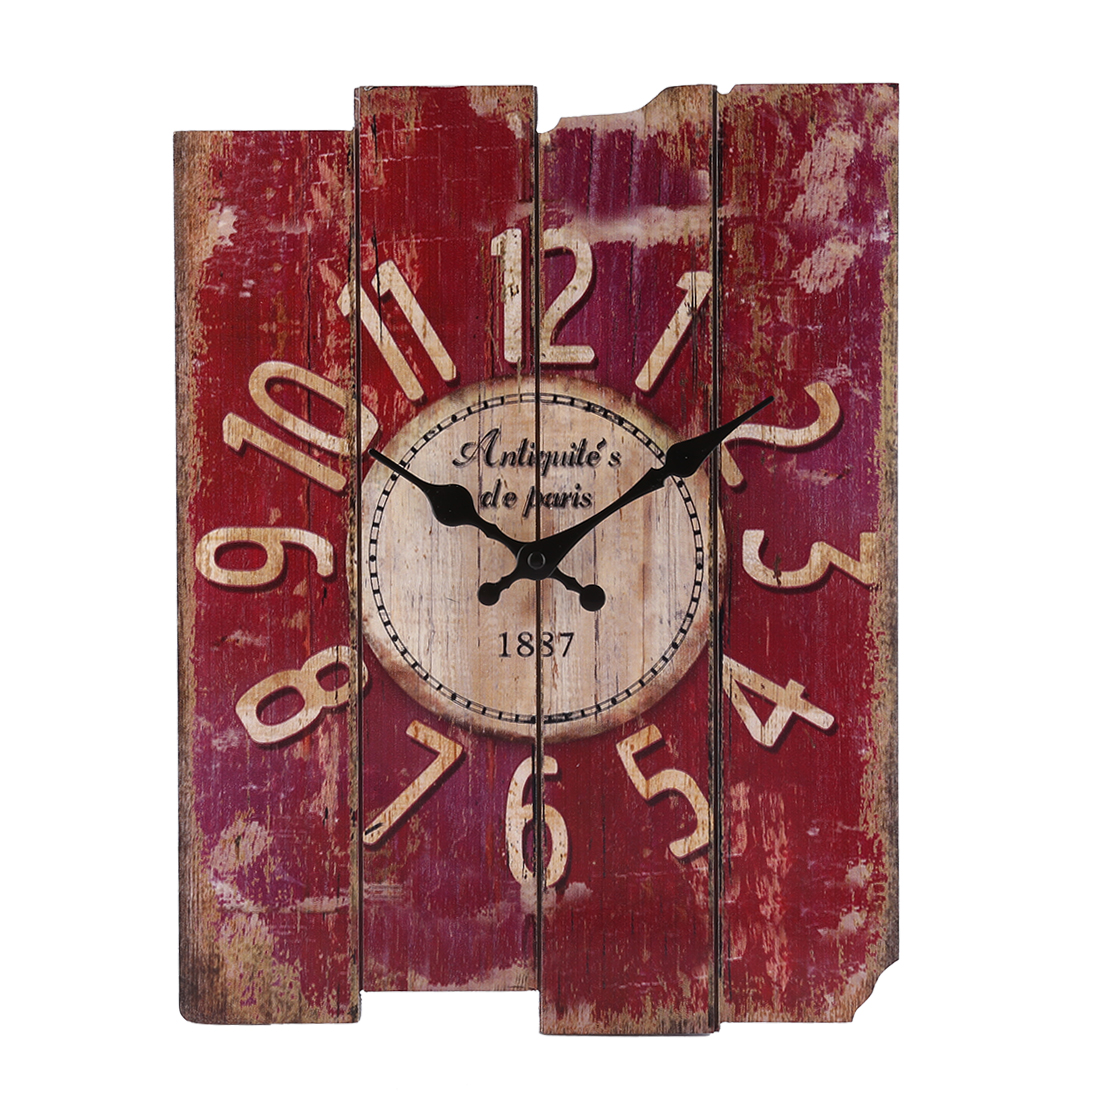 Creative Retro Style Square Hanging Clock Delicate Wall Clock for Living Room Bar - Red